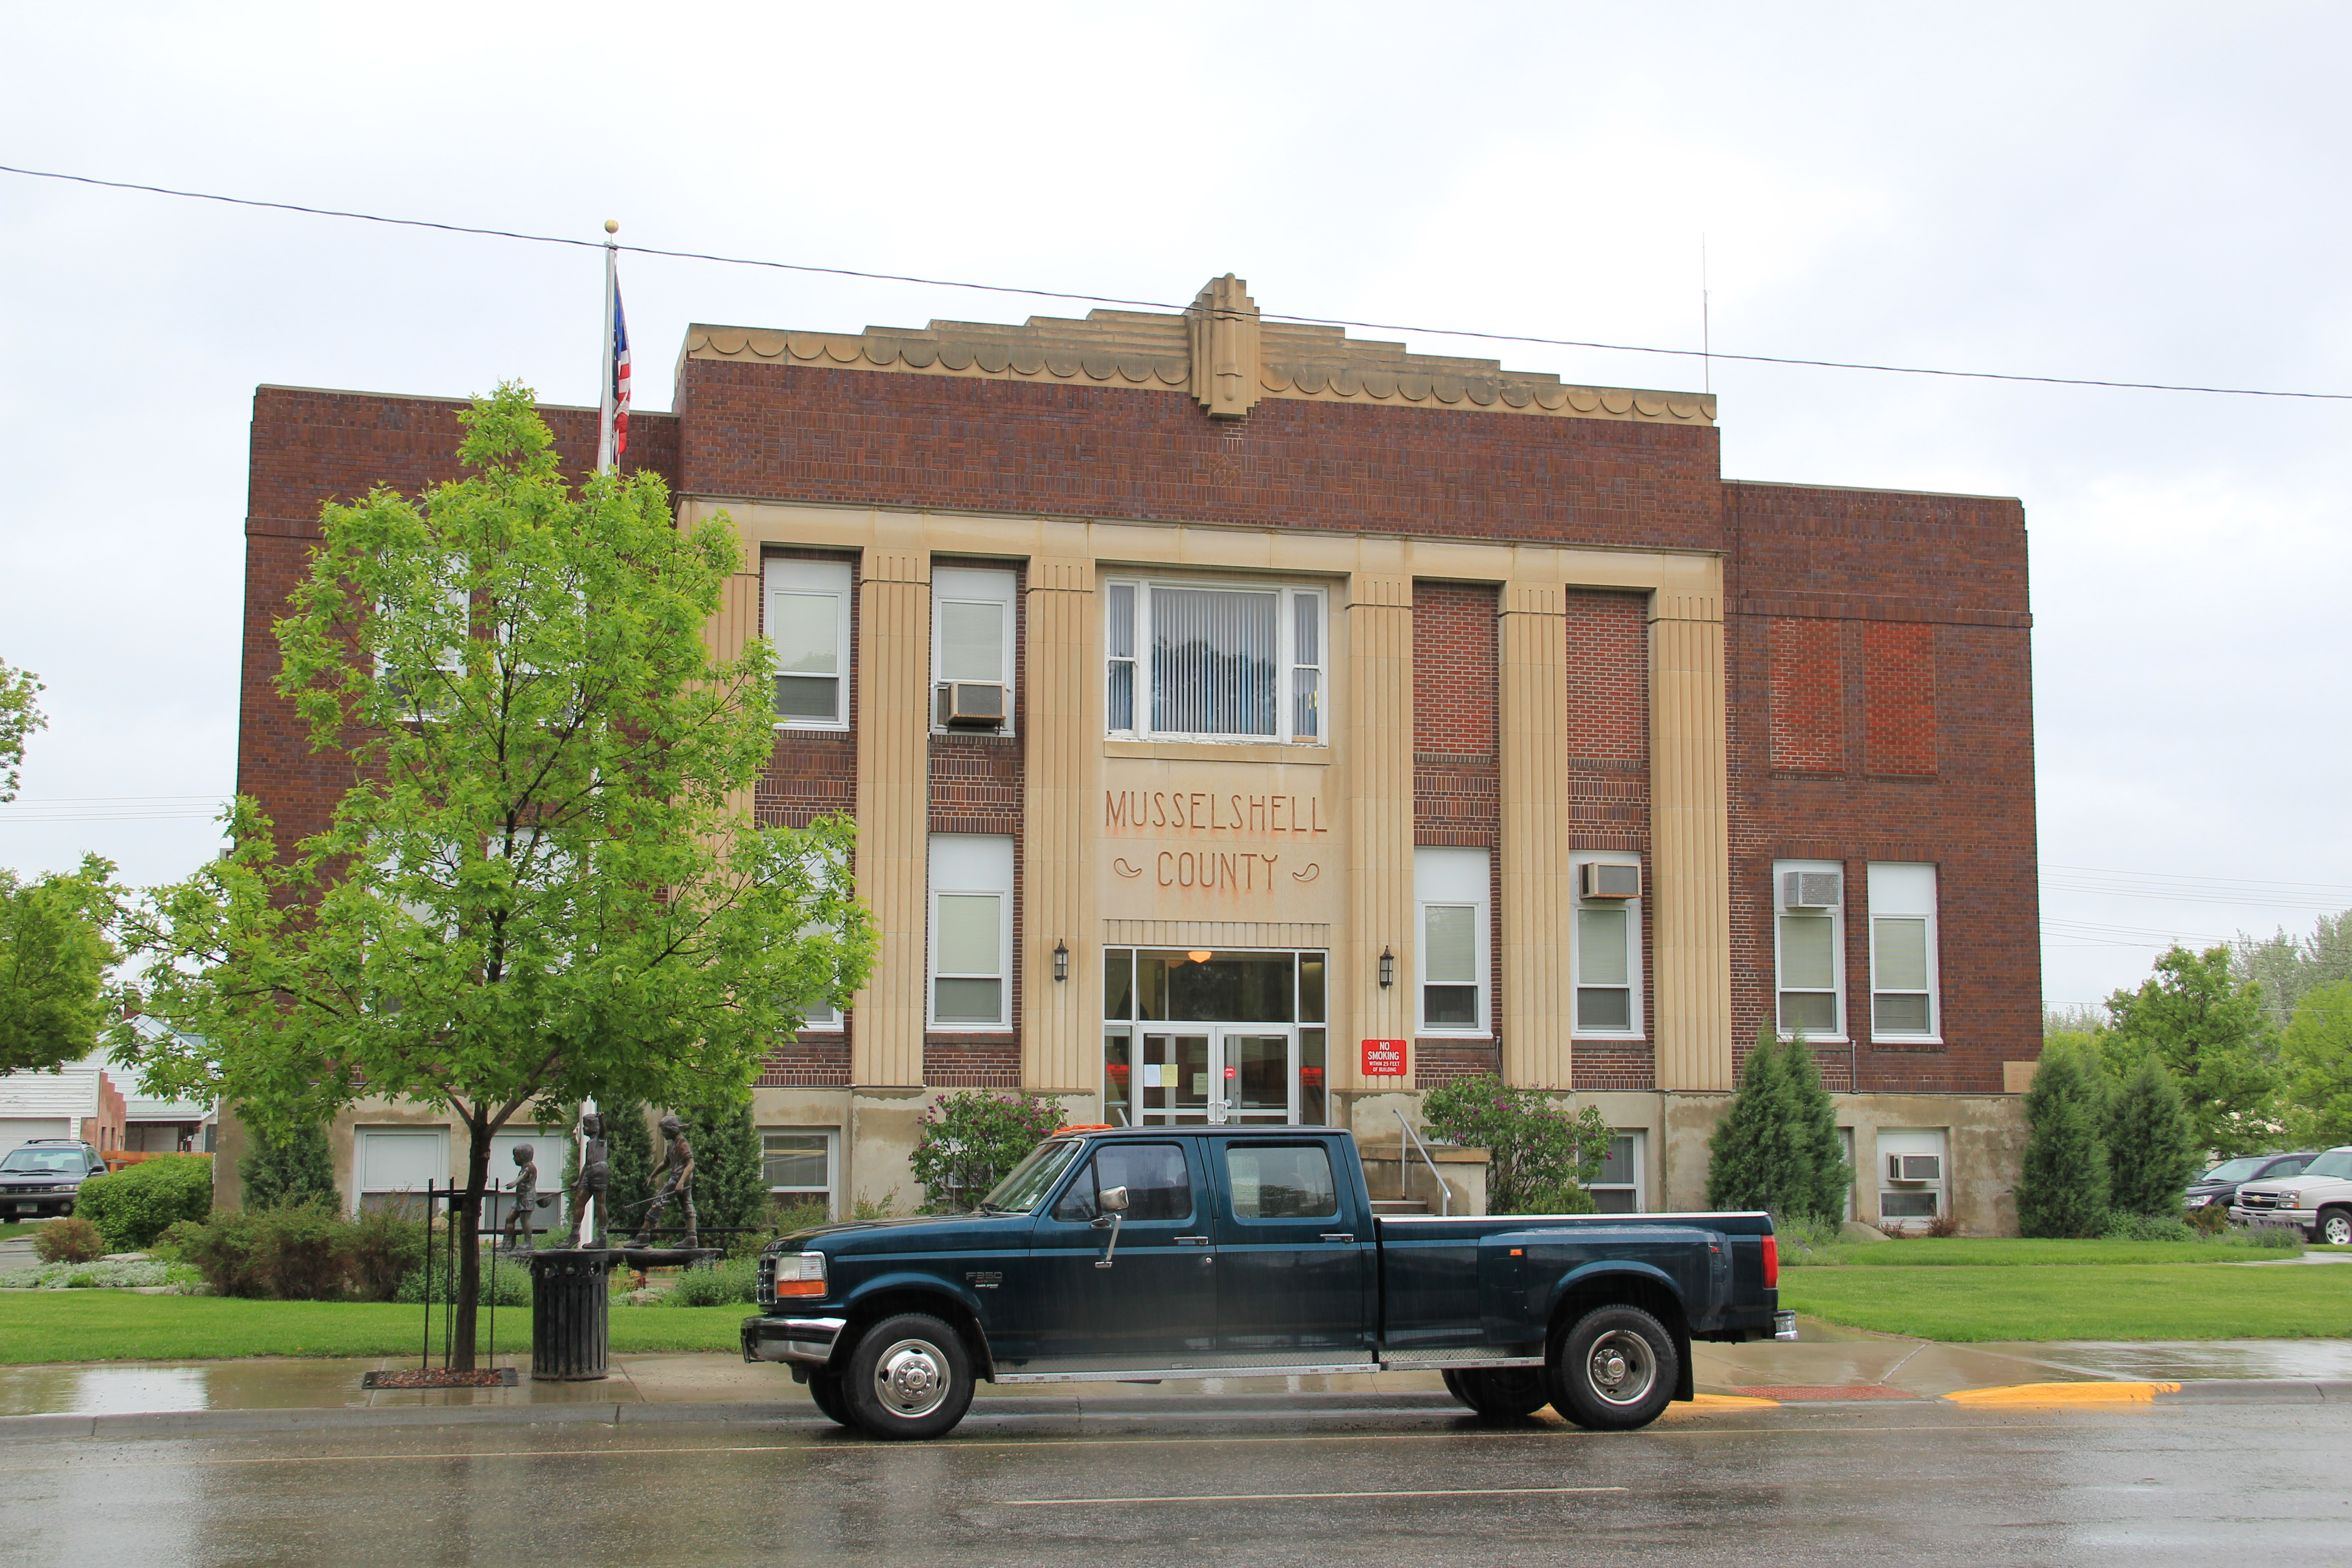 Montana mccone county circle - My Second Example For Today S Post Comes From Tiny Hingham A Great Northern Railroad Town In Hill County In 2010 Its Population Was Just Over 100 But The